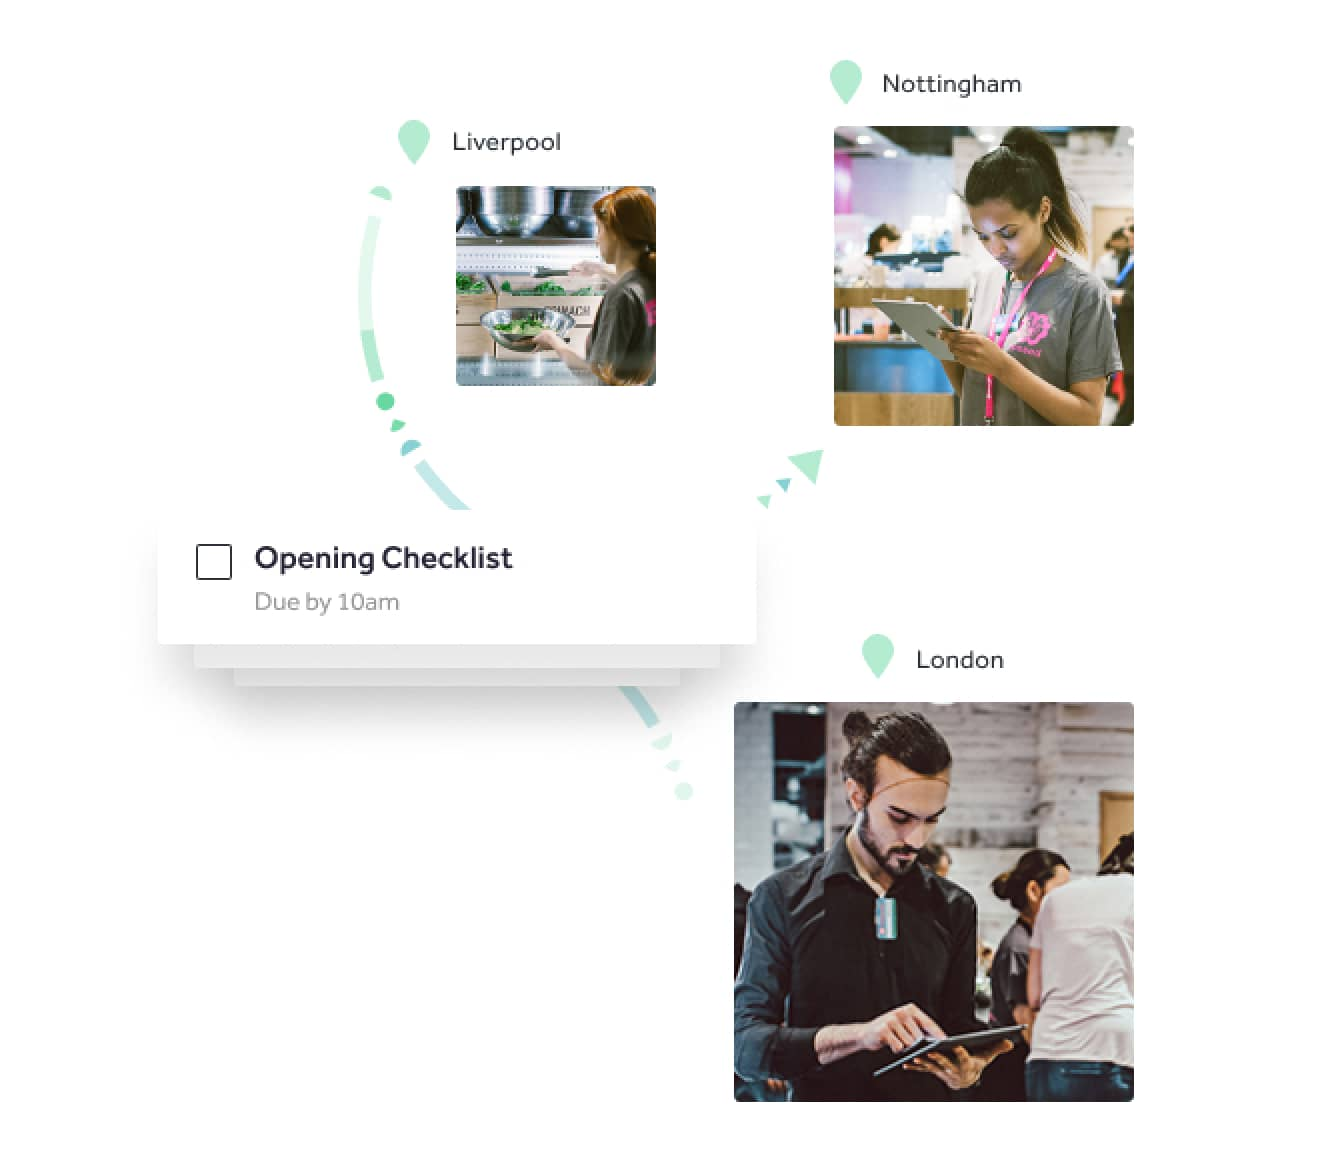 a task for a new menu launch is distributed to teams at multiple sites